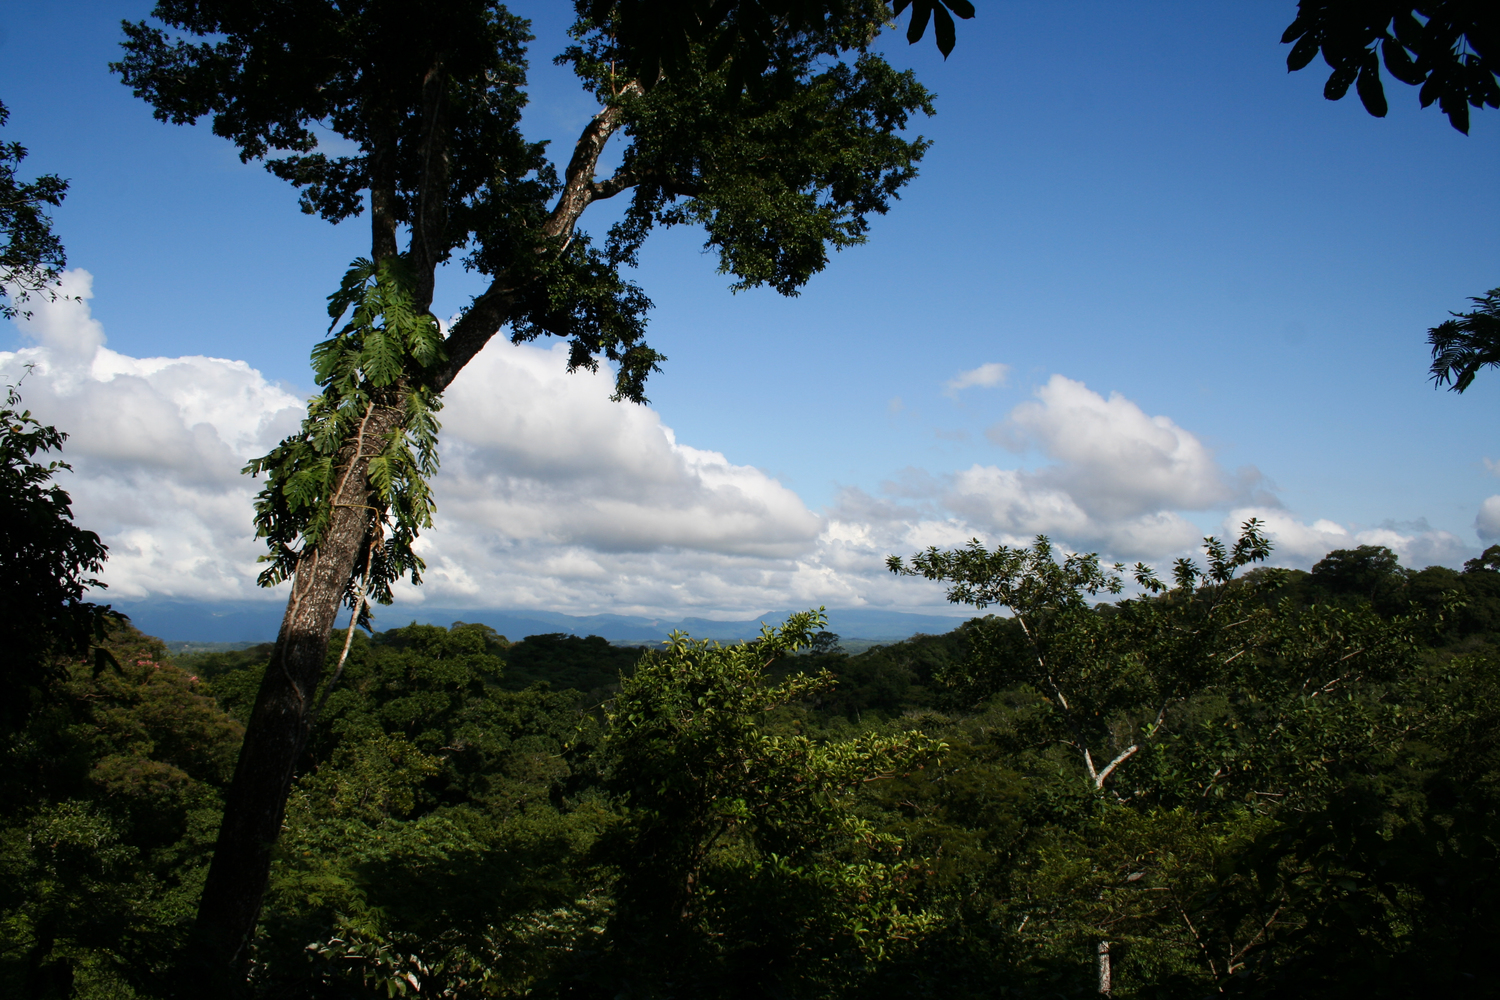 The nearer to the equator, the more frequently the plant-fungus symbiosis occurs - for example in the species-rich tropical rainforest of the Amboró National Park in Bolivia.